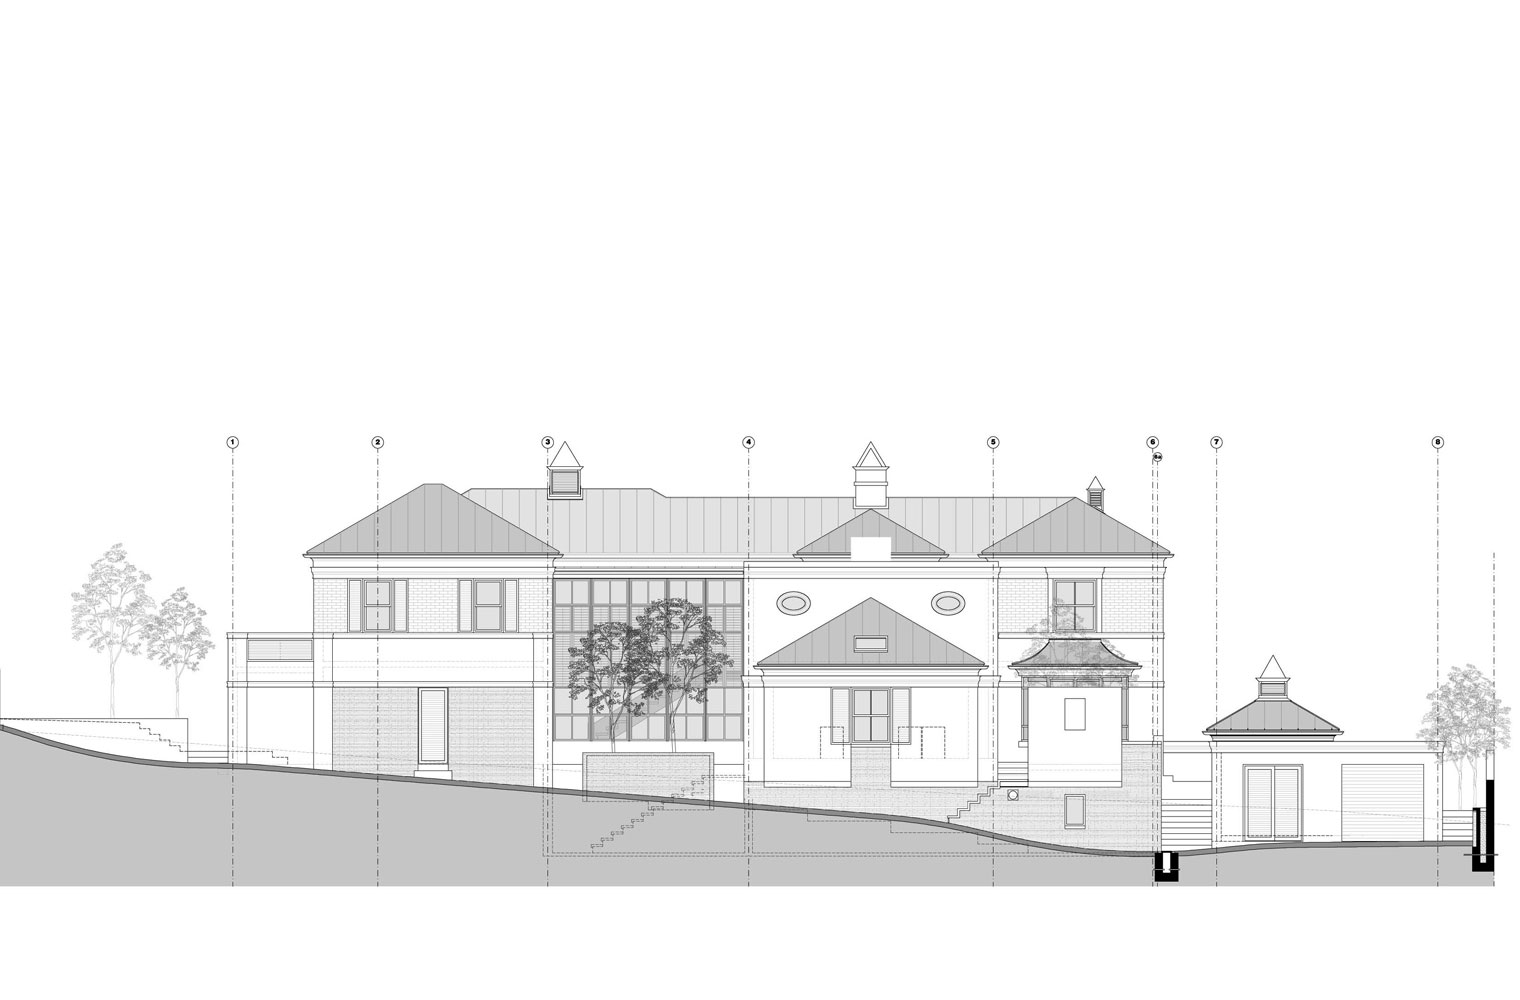 House Scheibe - East Elevation